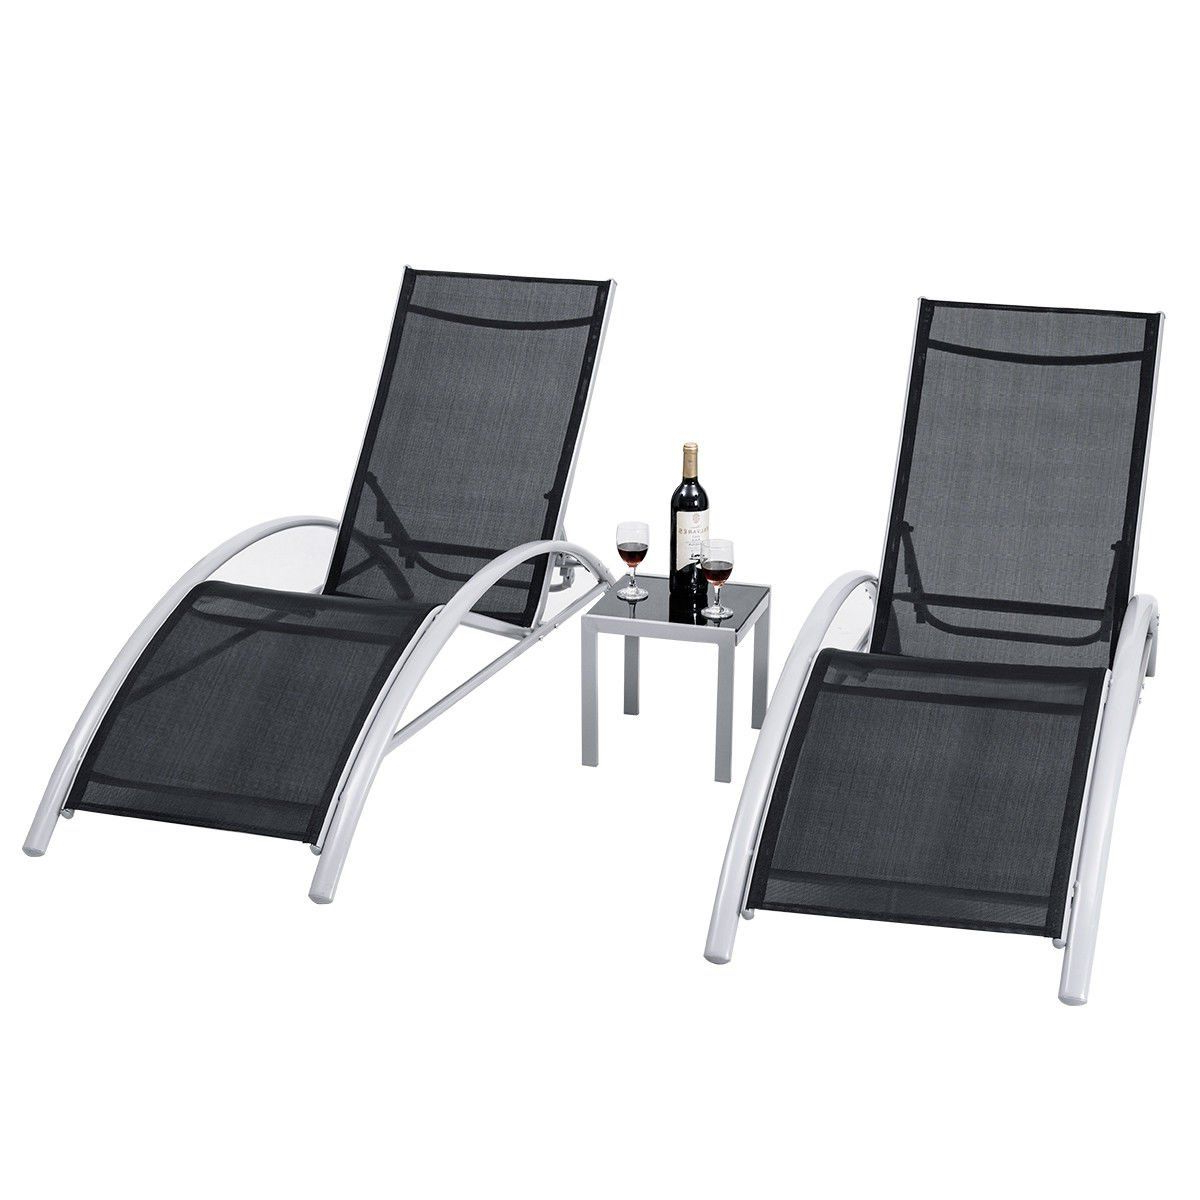 Giantex 3Piece Chaise Lounge Set W/ 1 Small Table 2 Chairs Pertaining To Most Recently Released Outdoor 3 Piece Chaise Lounger Sets With Table (Gallery 2 of 25)